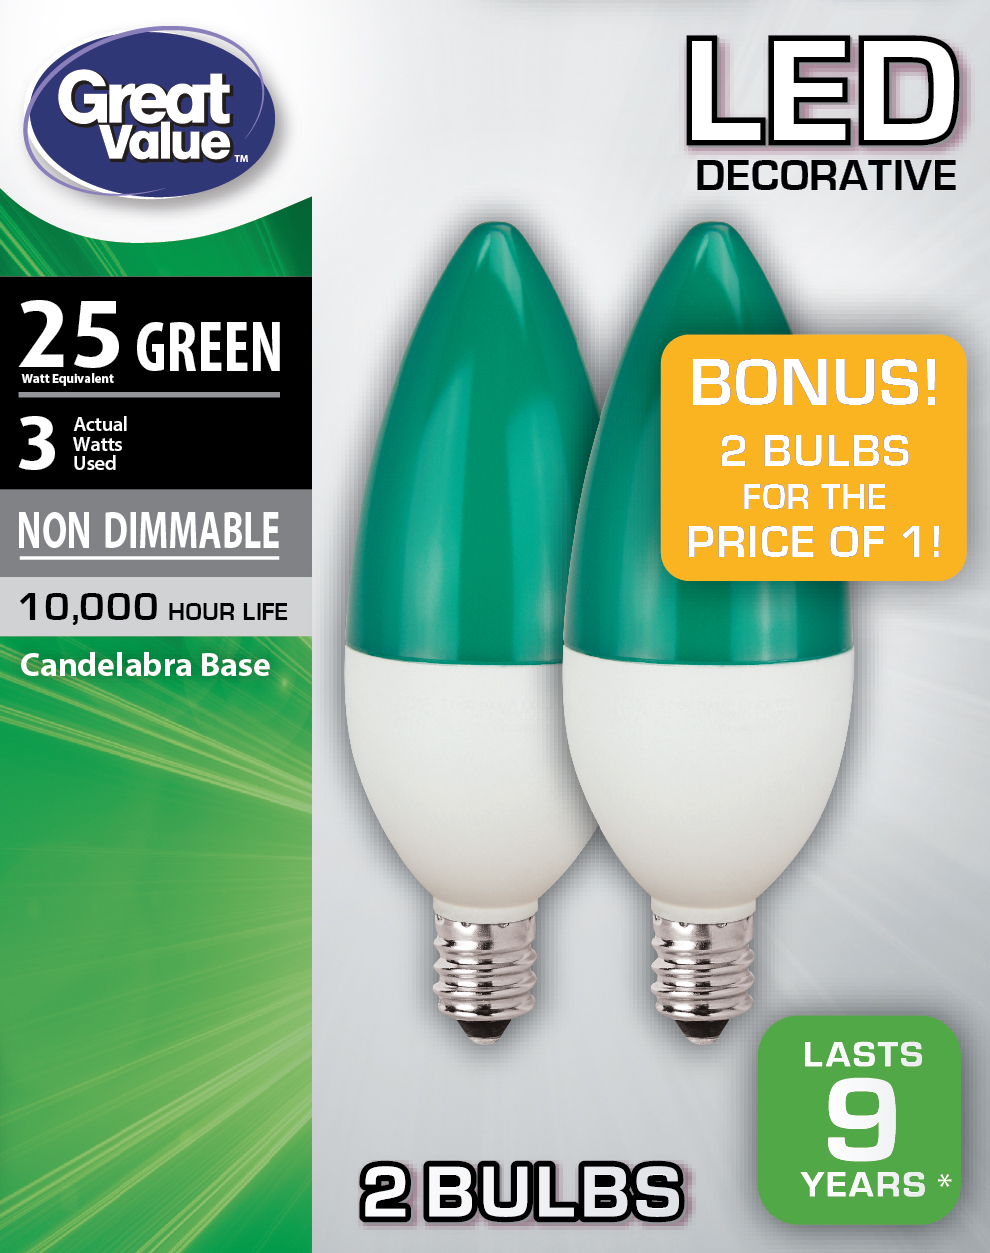 Great Value Led Light Bulb 3w 25w Equivalent B11 Decorative Lamp E12 Candelabra Base Non Dimmable Green 2 Pack